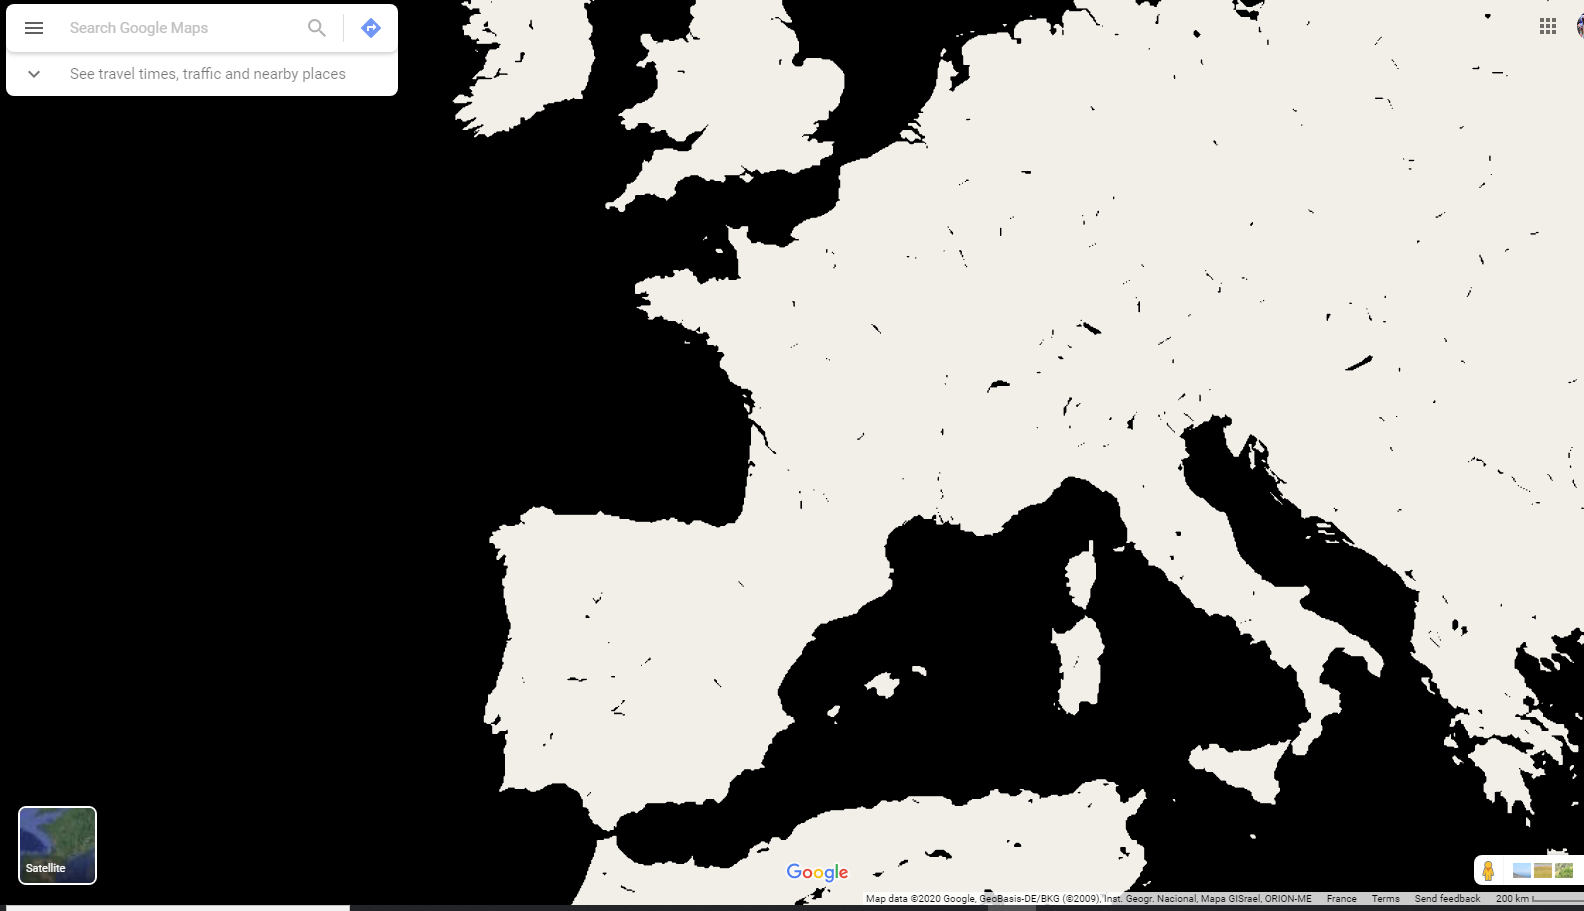 Black And White Map Of The World Why is Maps totally black and white?   Google Maps Community